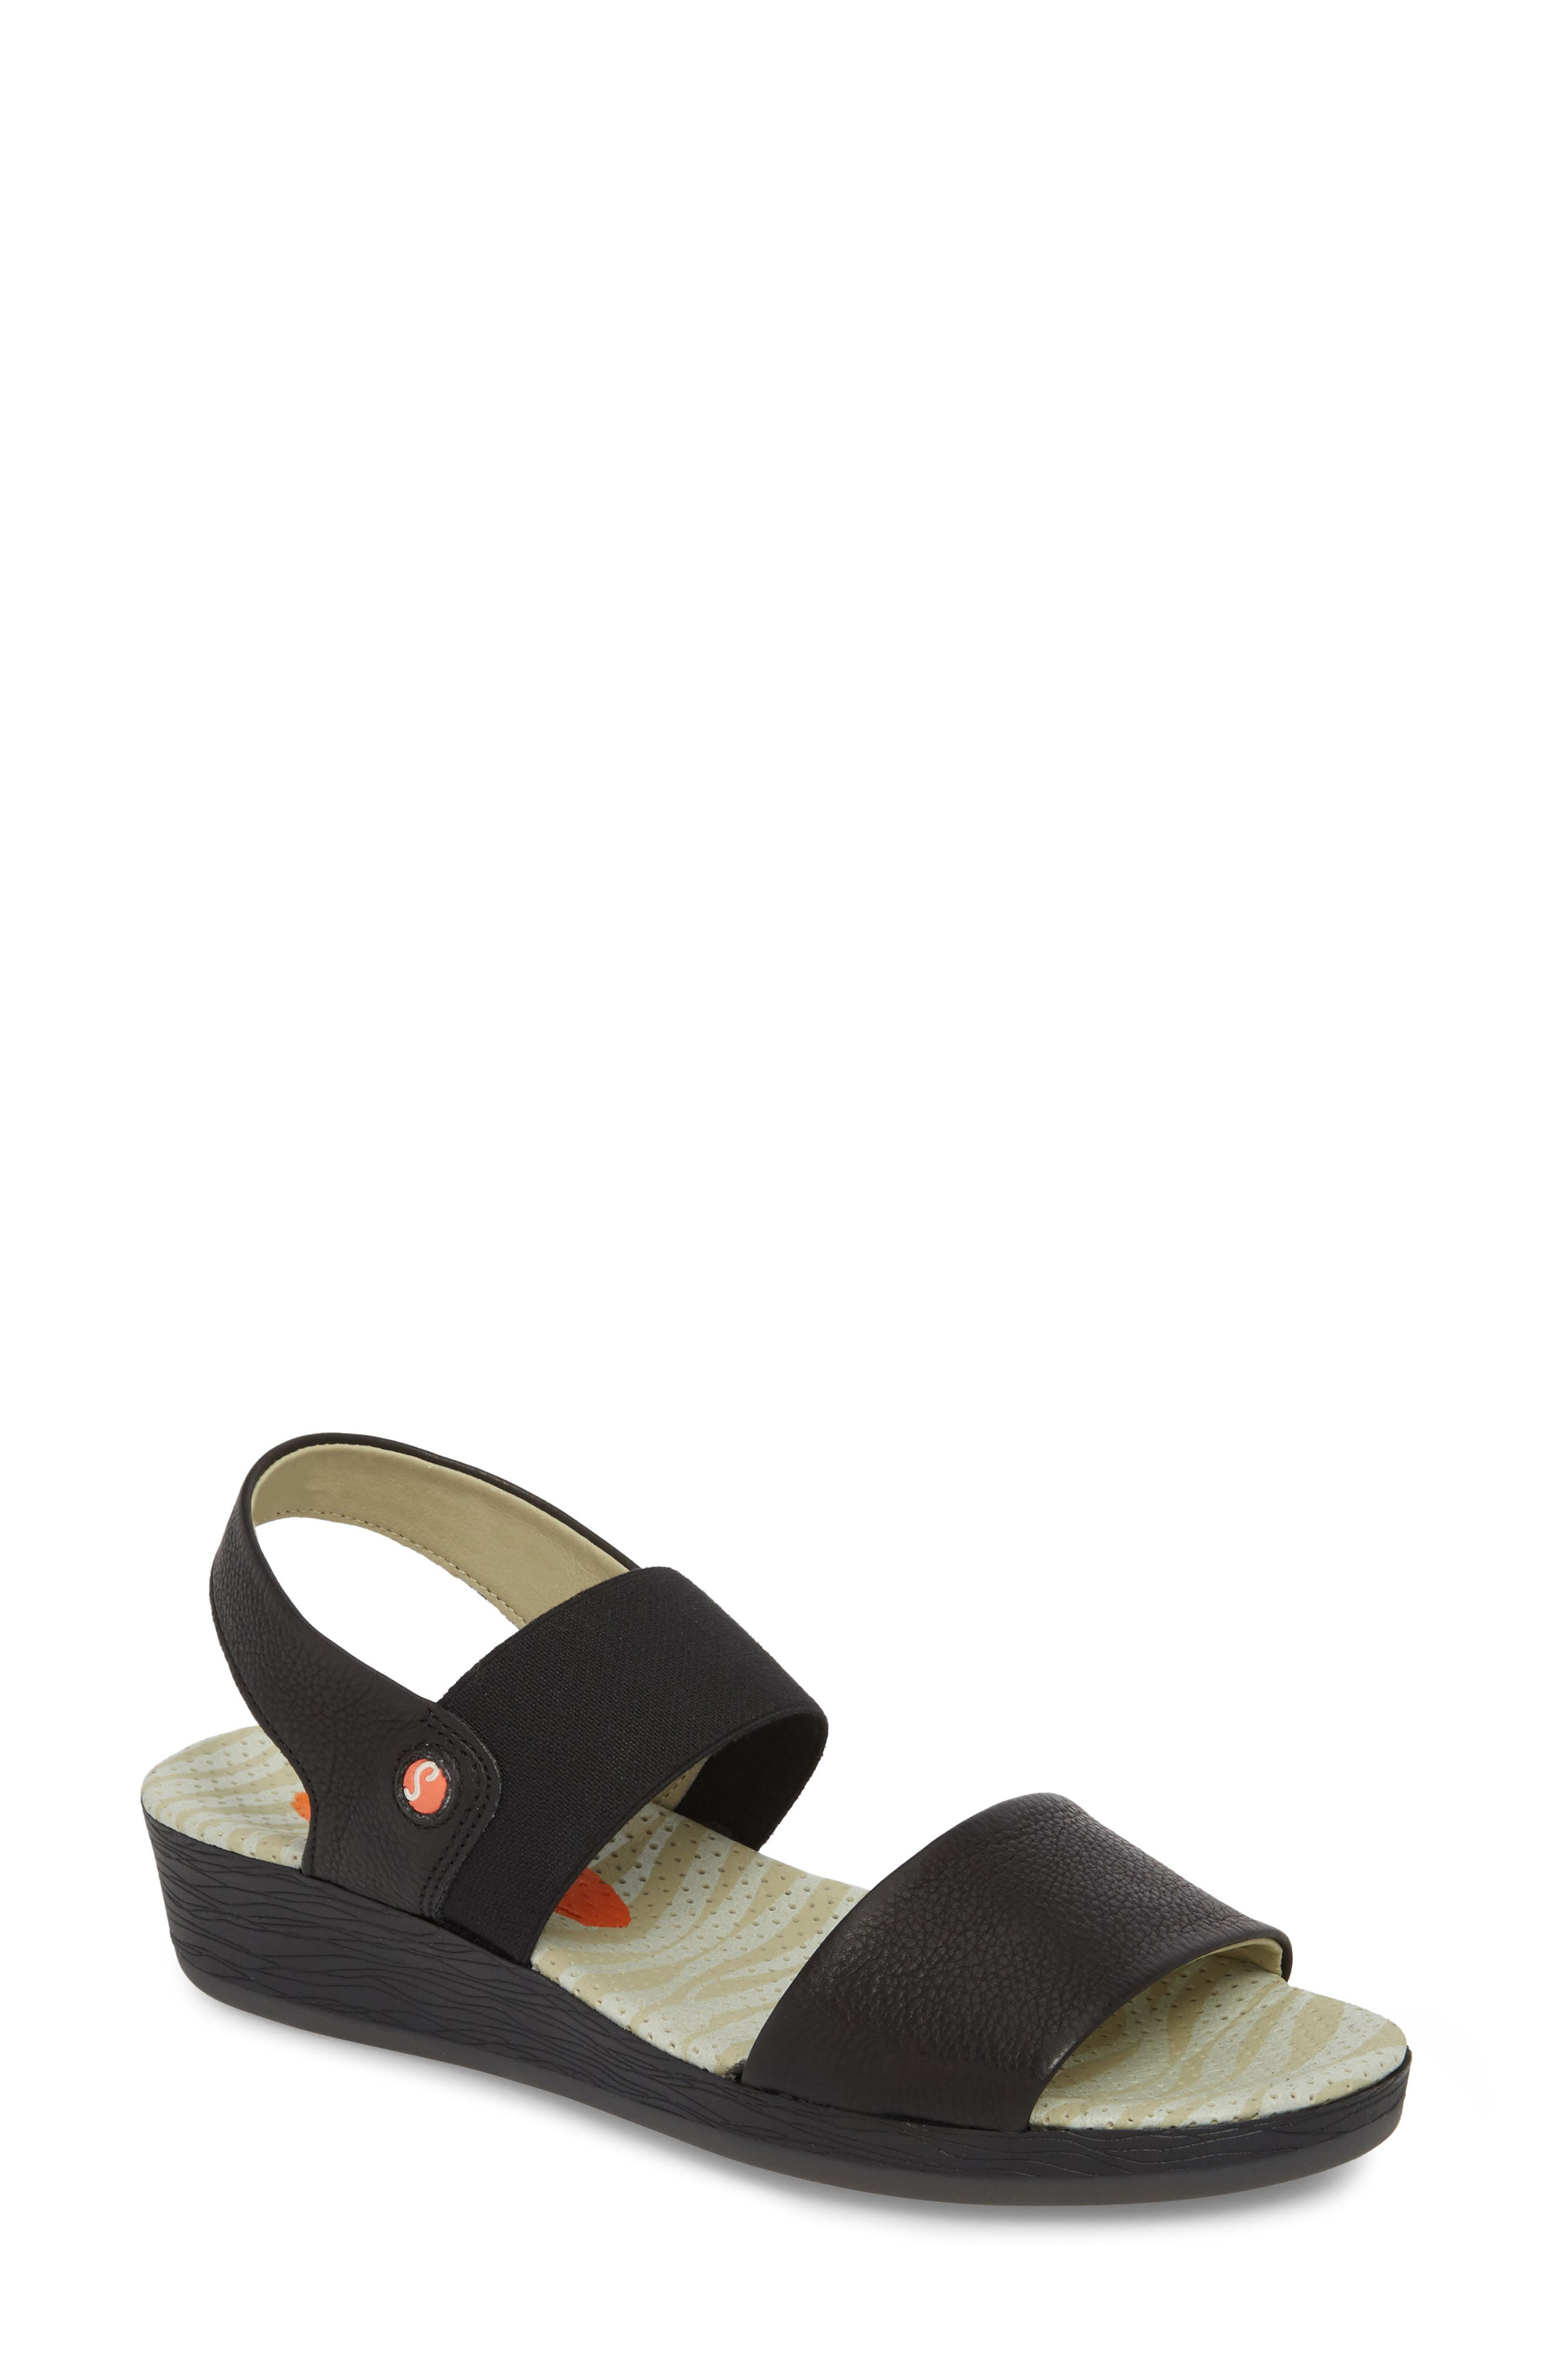 Softinos By Fly London Sandal - Black